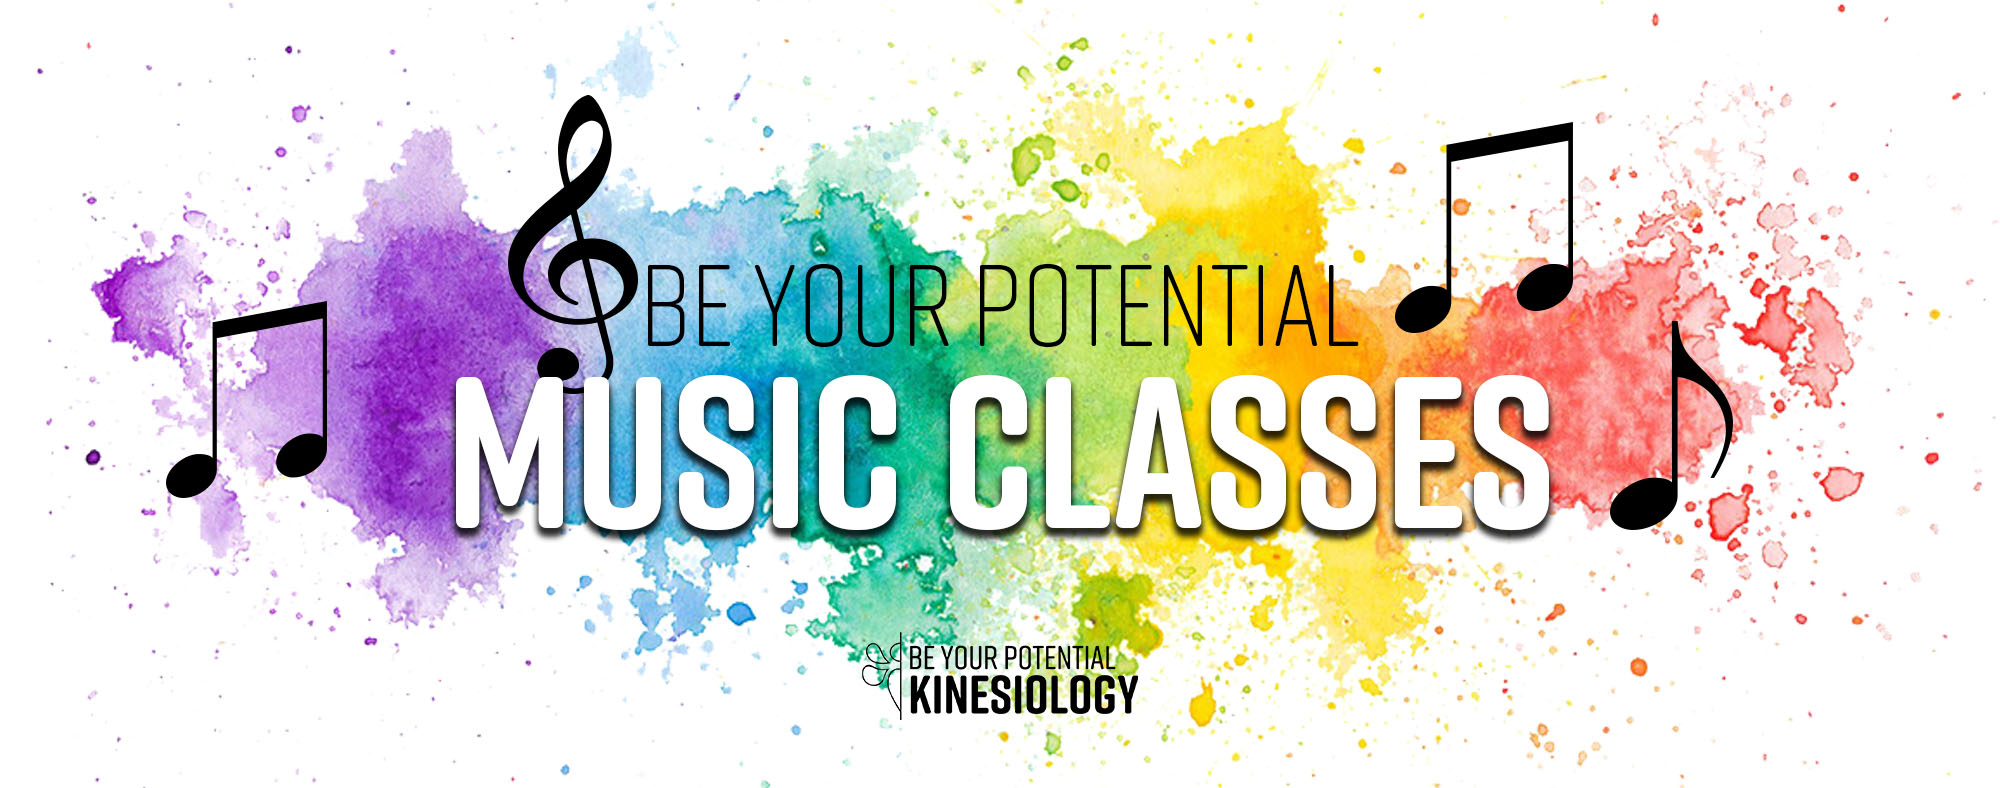 Be Your Potential Kinesiology Music